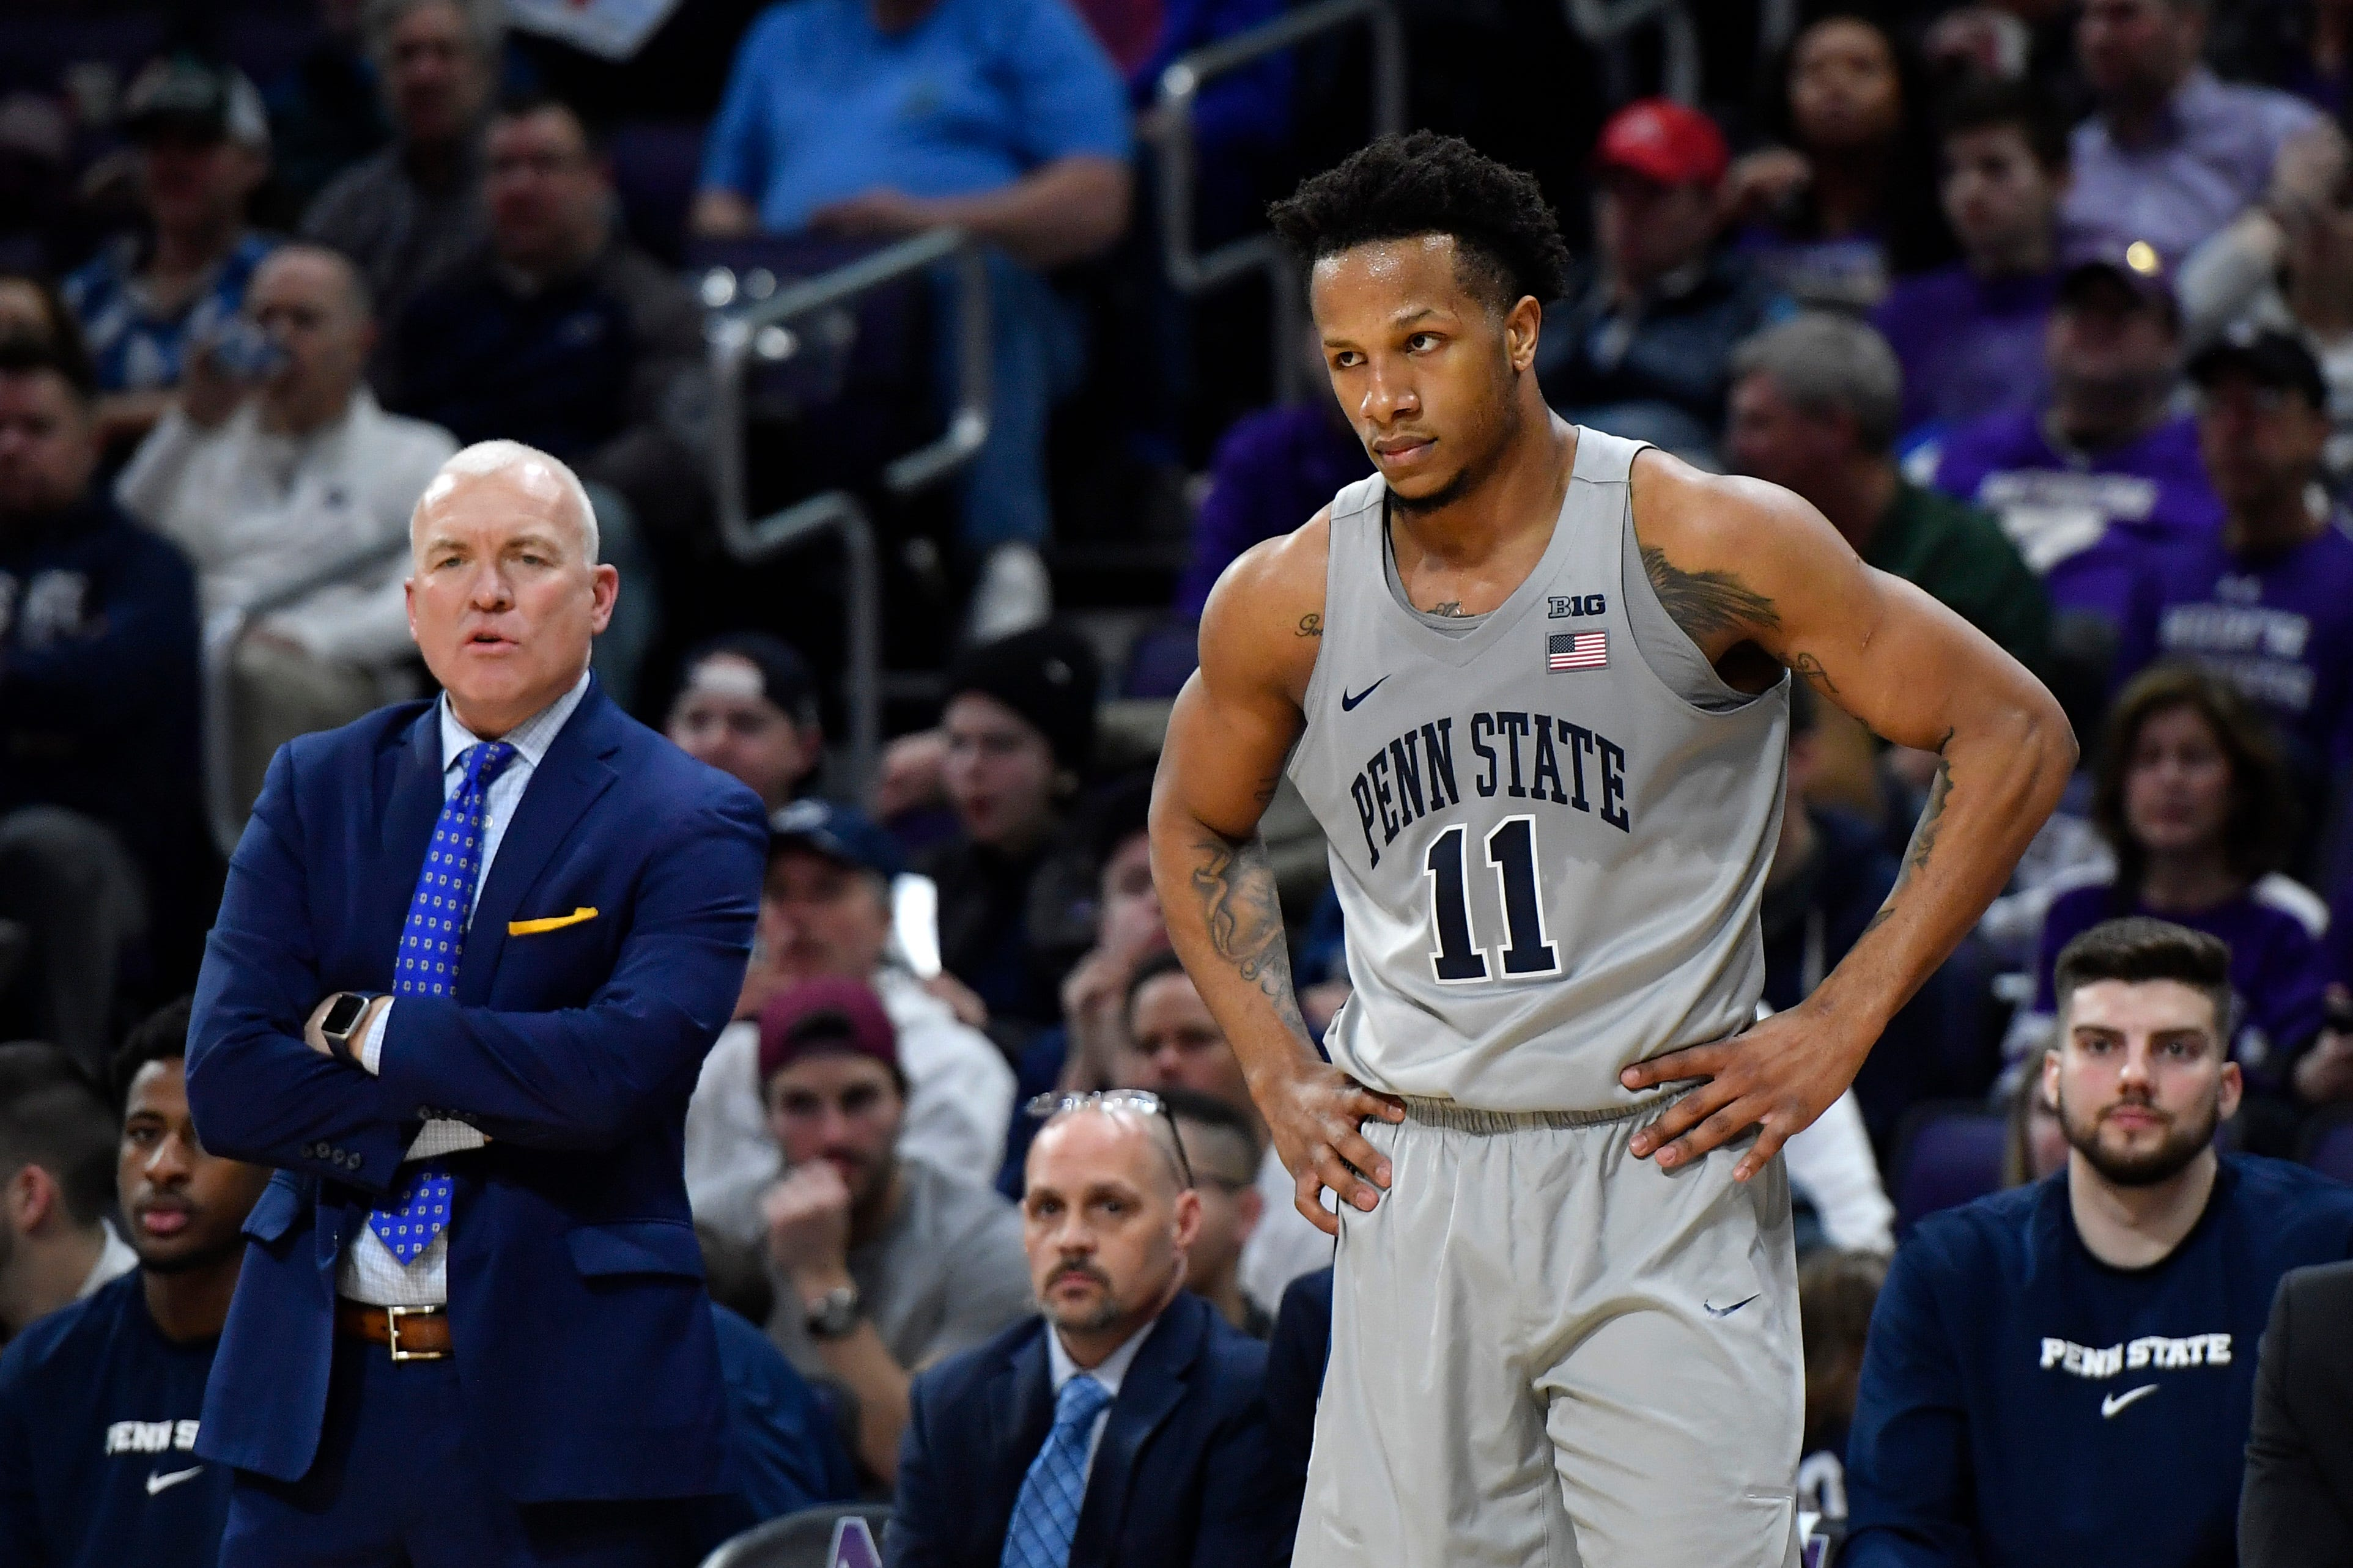 Penn State basketball coach Pat Chambers resigns after allegations of inappropriate conduct